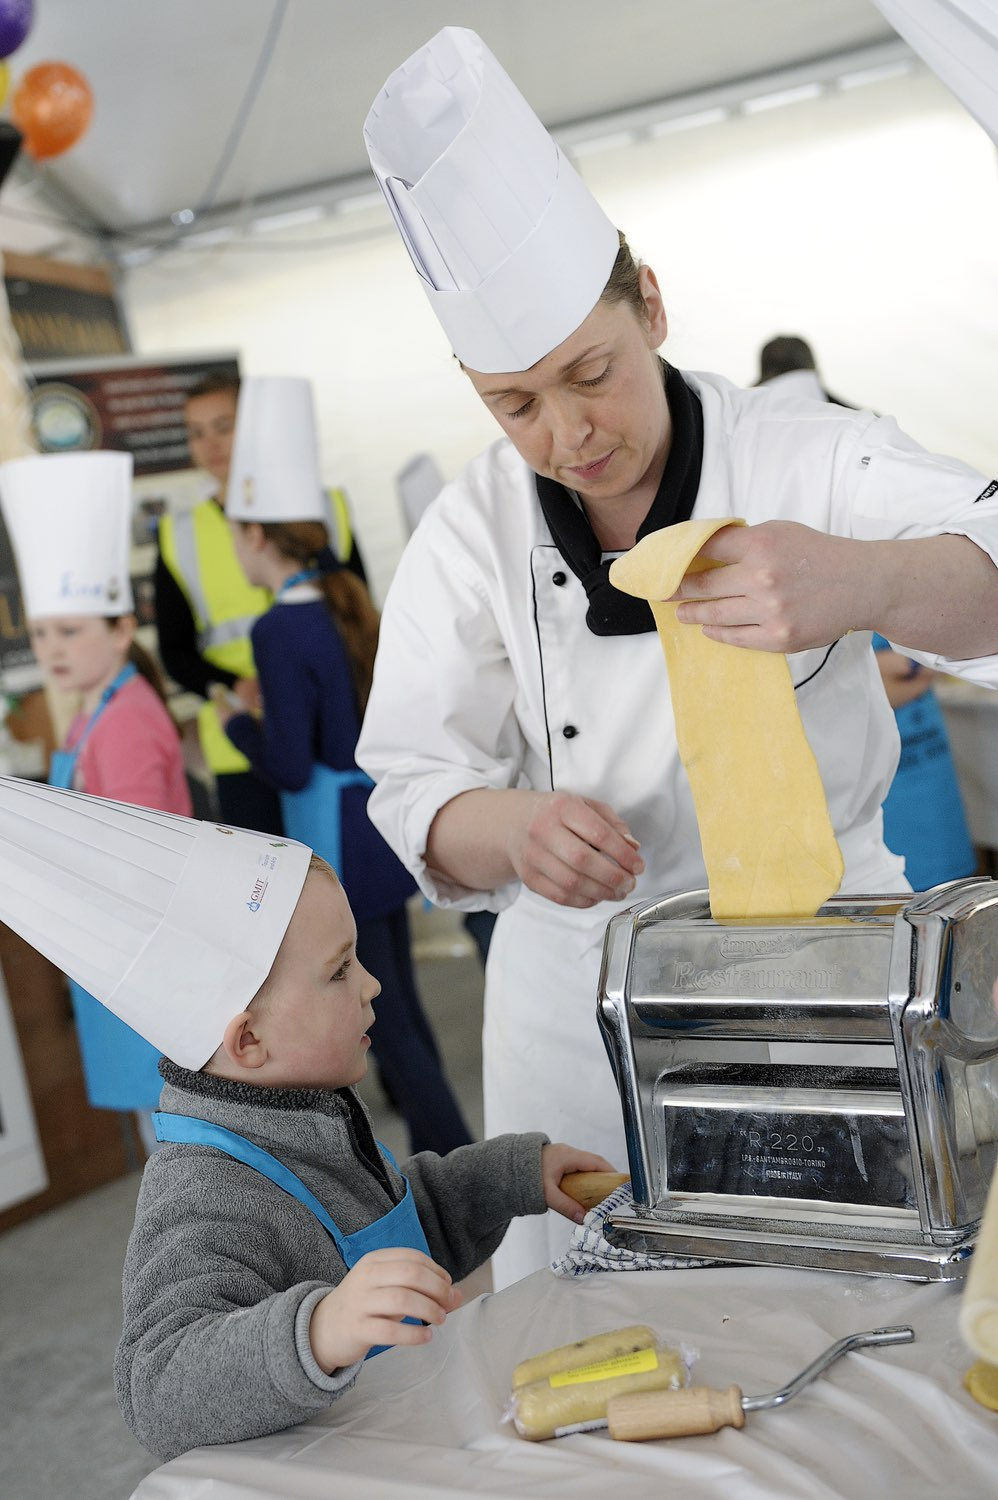 Chef showing child how to roll out dough